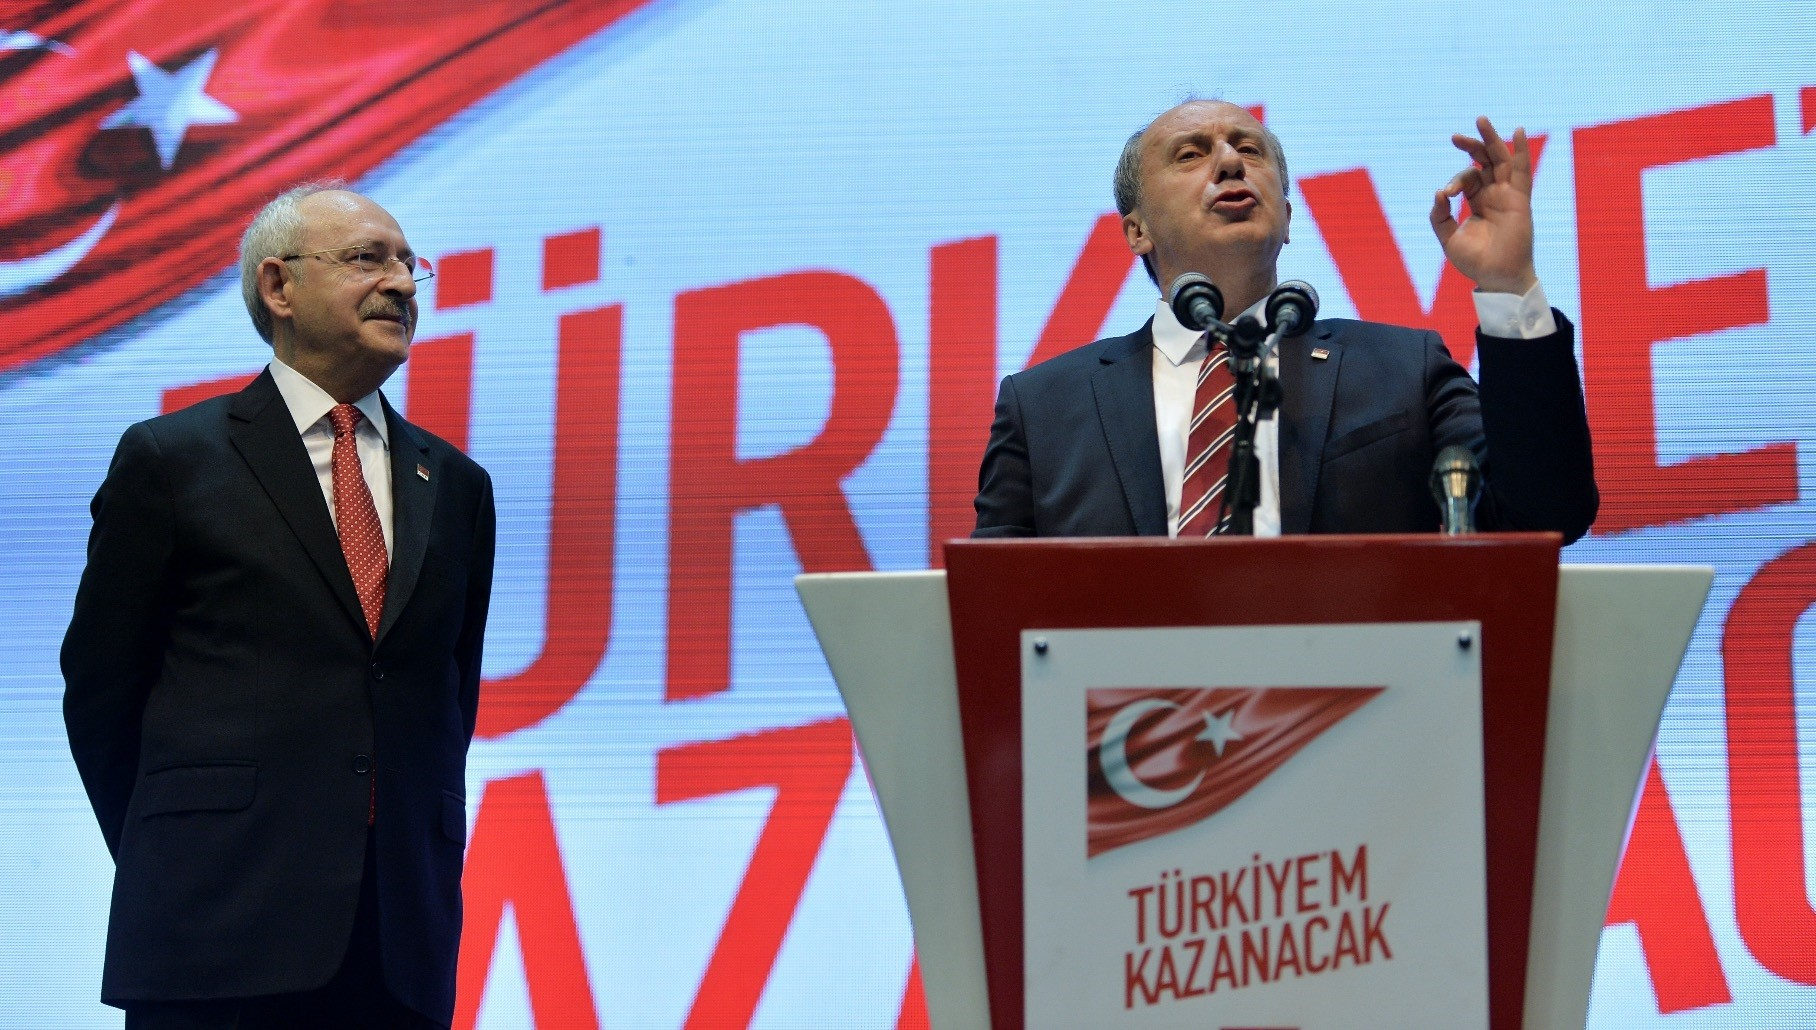 CHP leader Kemal Ku0131lu0131u00e7darou011flu (L) and Muharrem u0130nce address a group meeting of the party, held to discuss the party campaign for the June 24 presidential elections, Ankara, May 4.